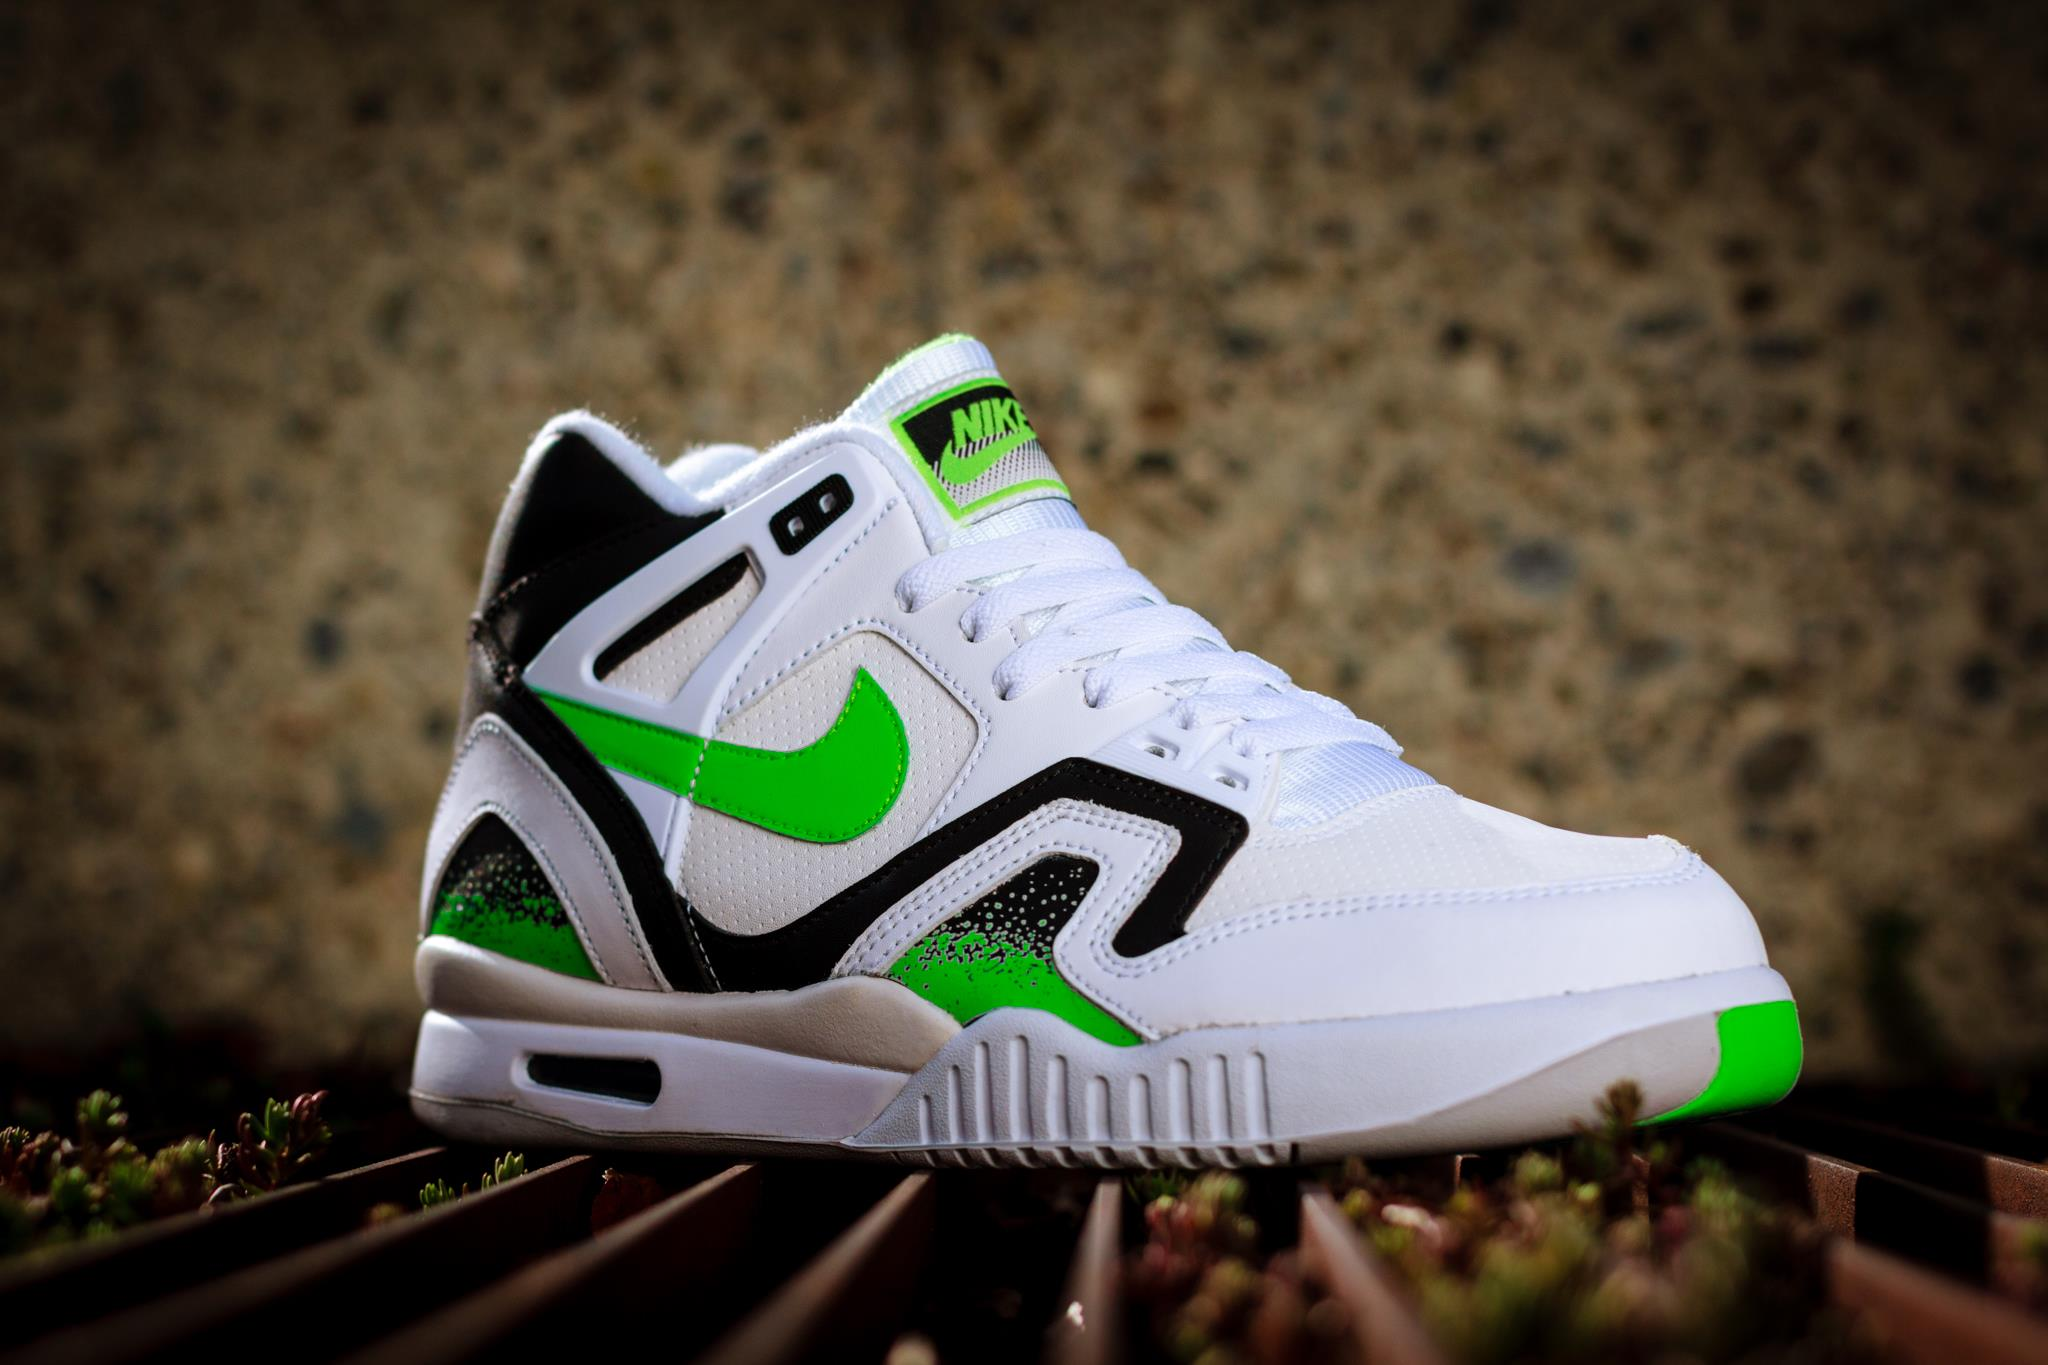 nike air tech challenge ii poison green available. Black Bedroom Furniture Sets. Home Design Ideas